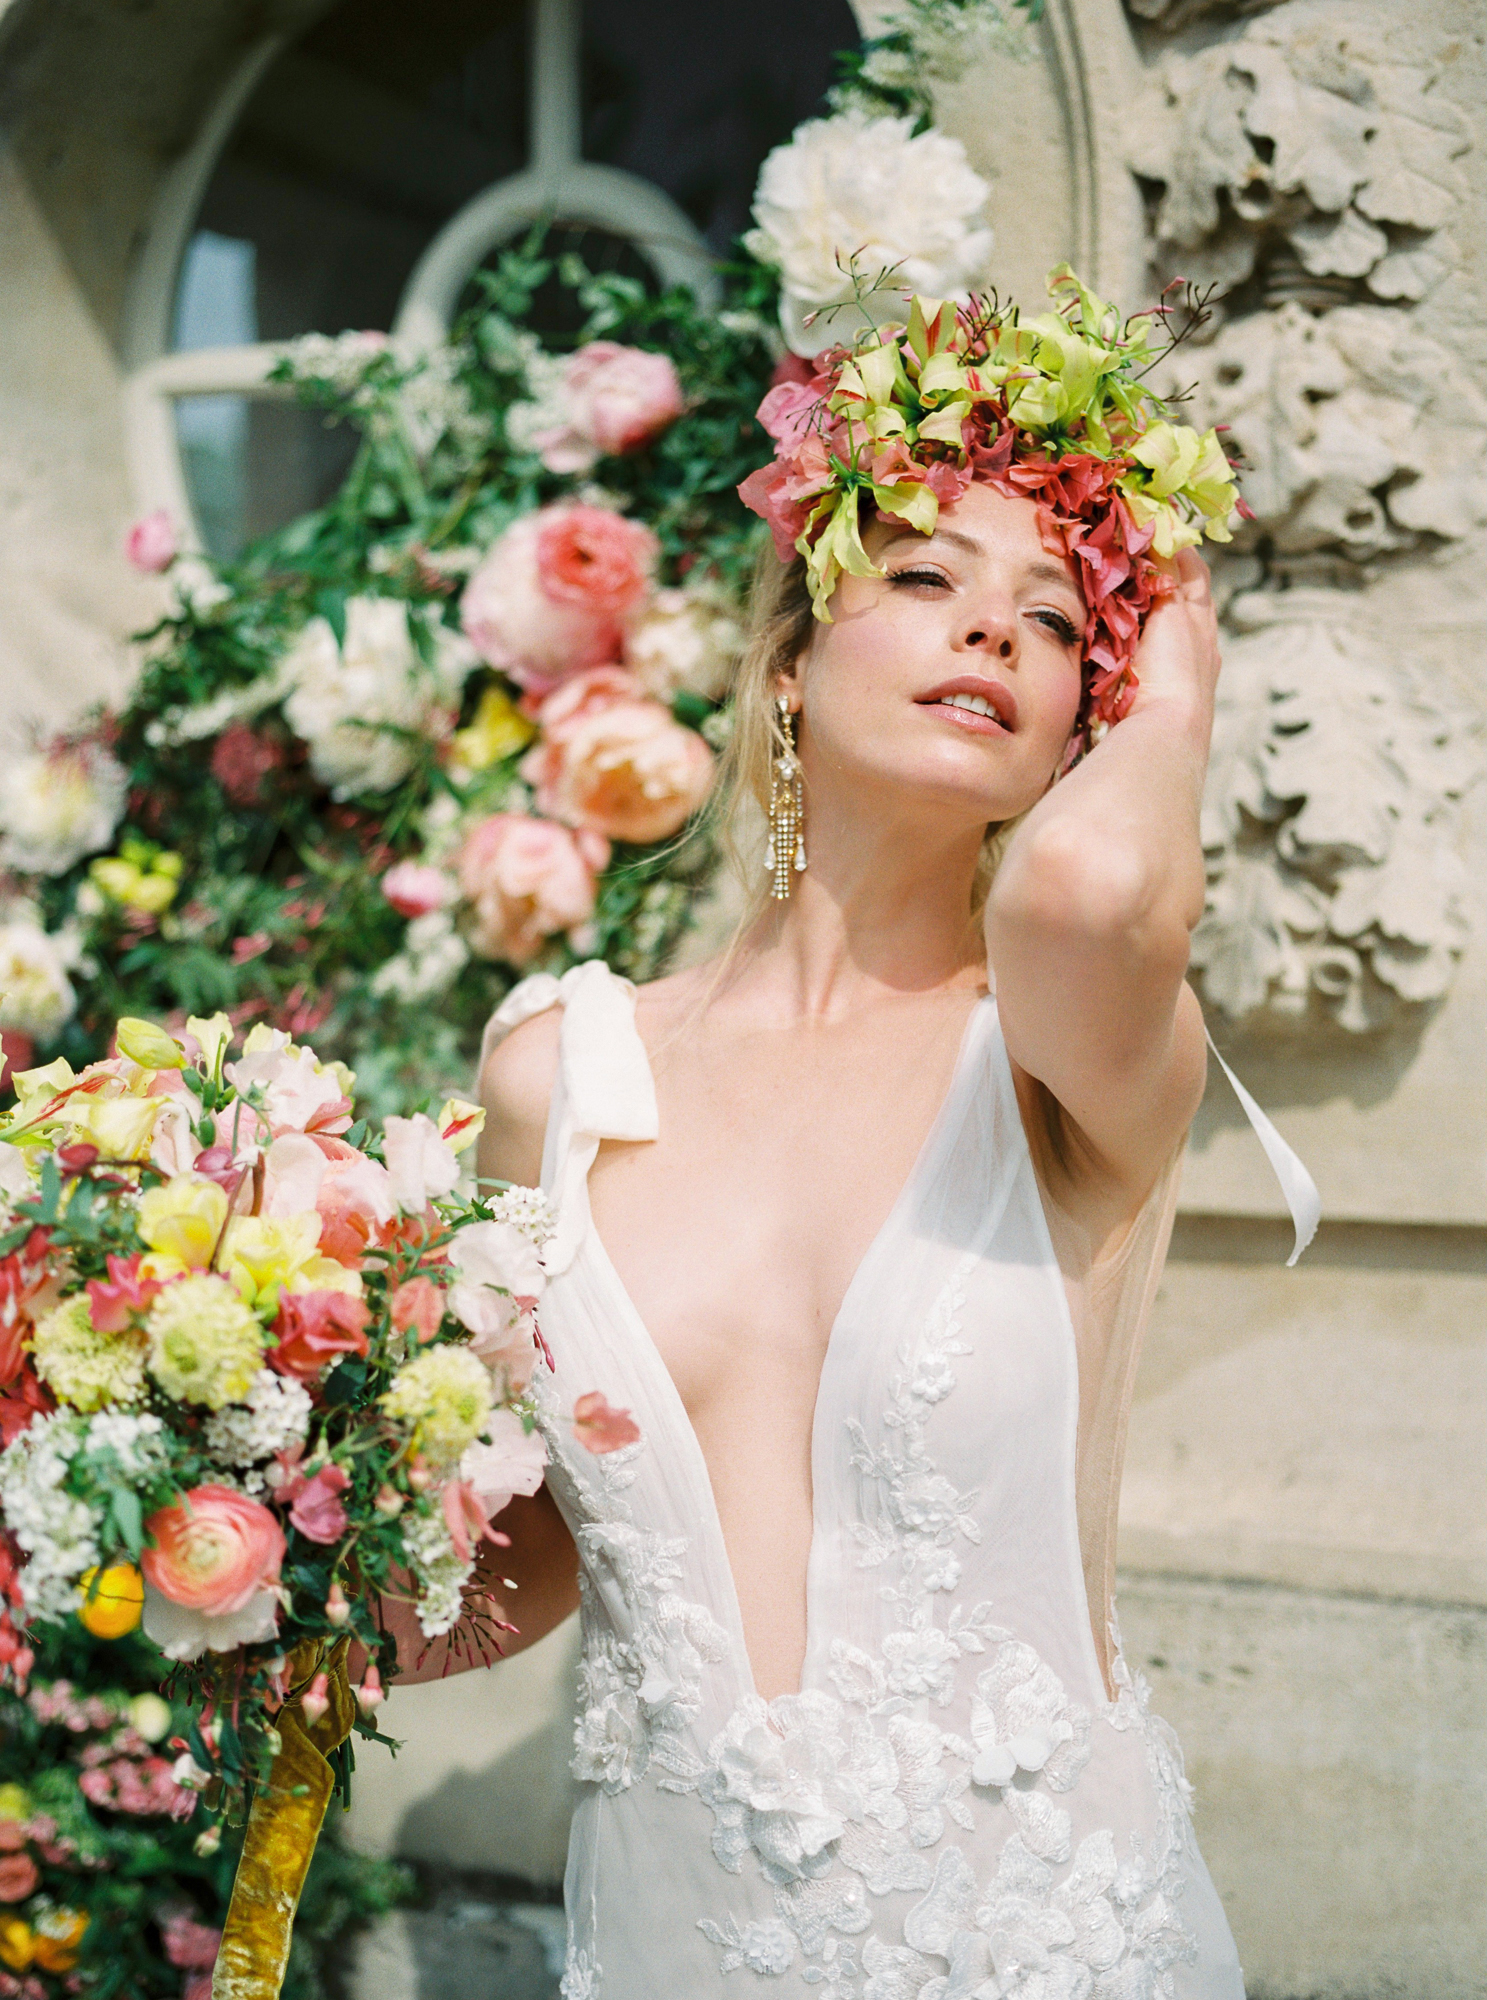 travellur_photoshoot__summer_in_versailles_wedding_flowers_bridal_luxe_shoot_floral_france_bride.jpg